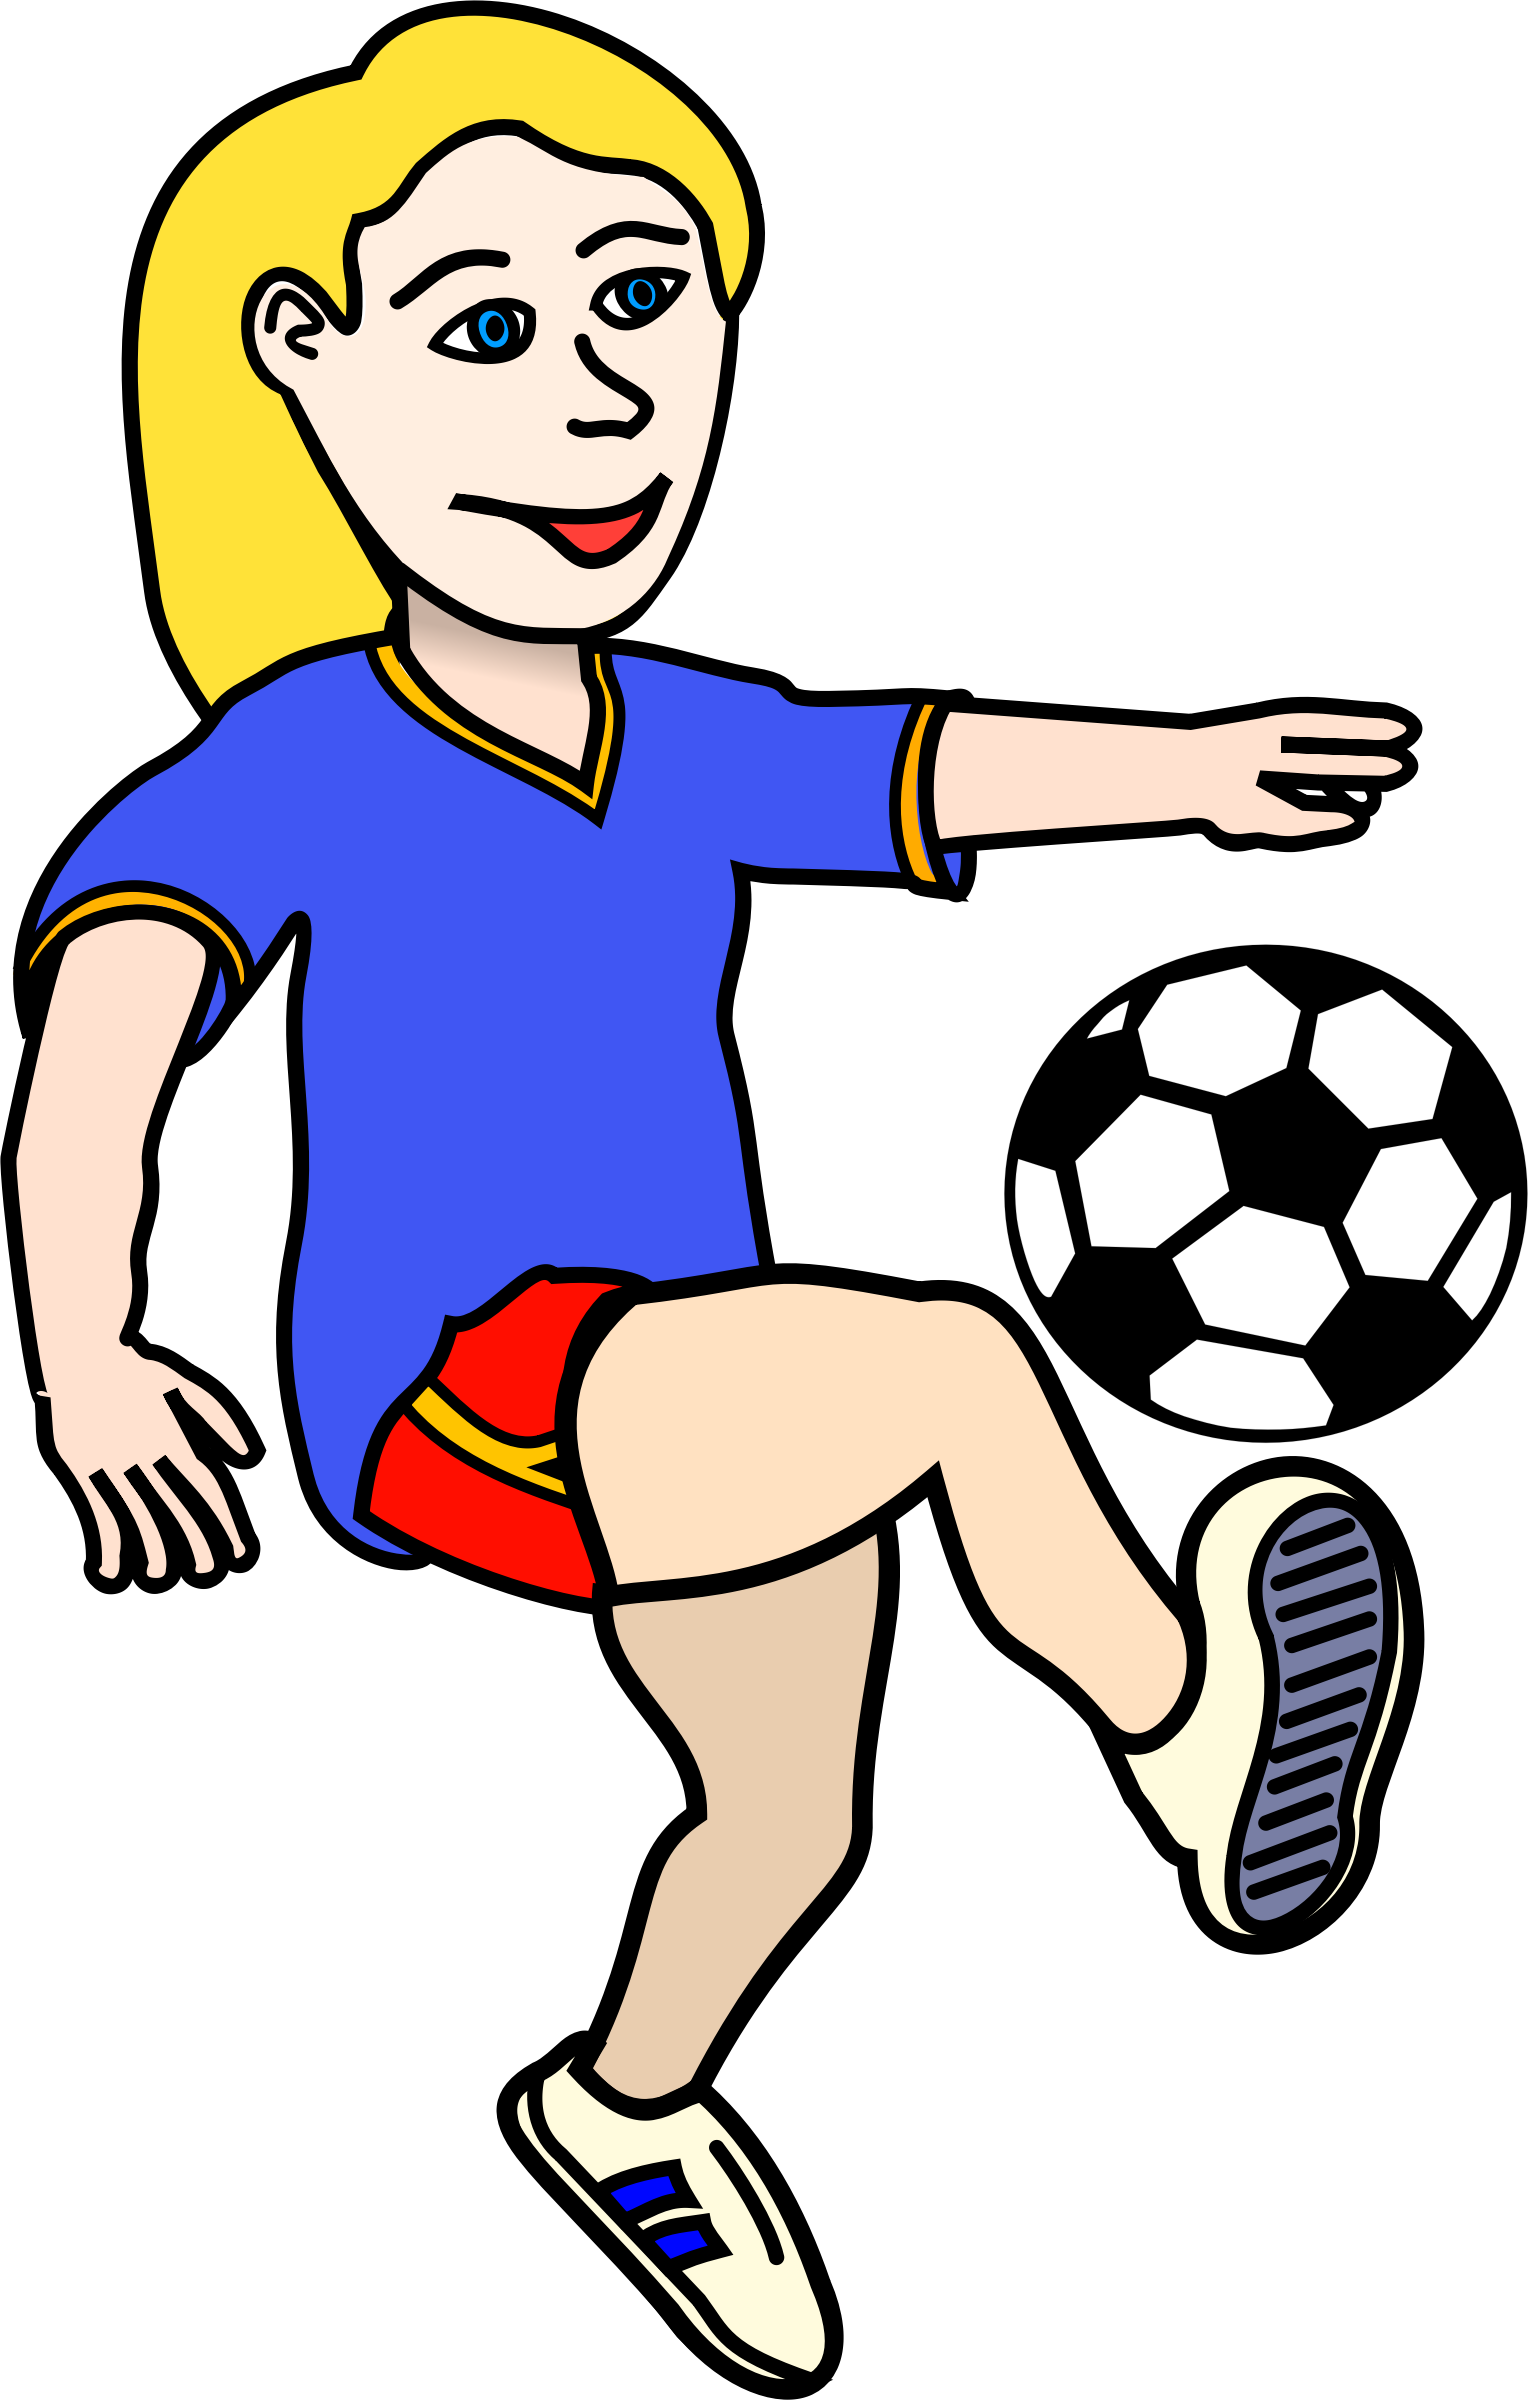 svg transparent stock Players clipart. Soccer player cilpart fancy.